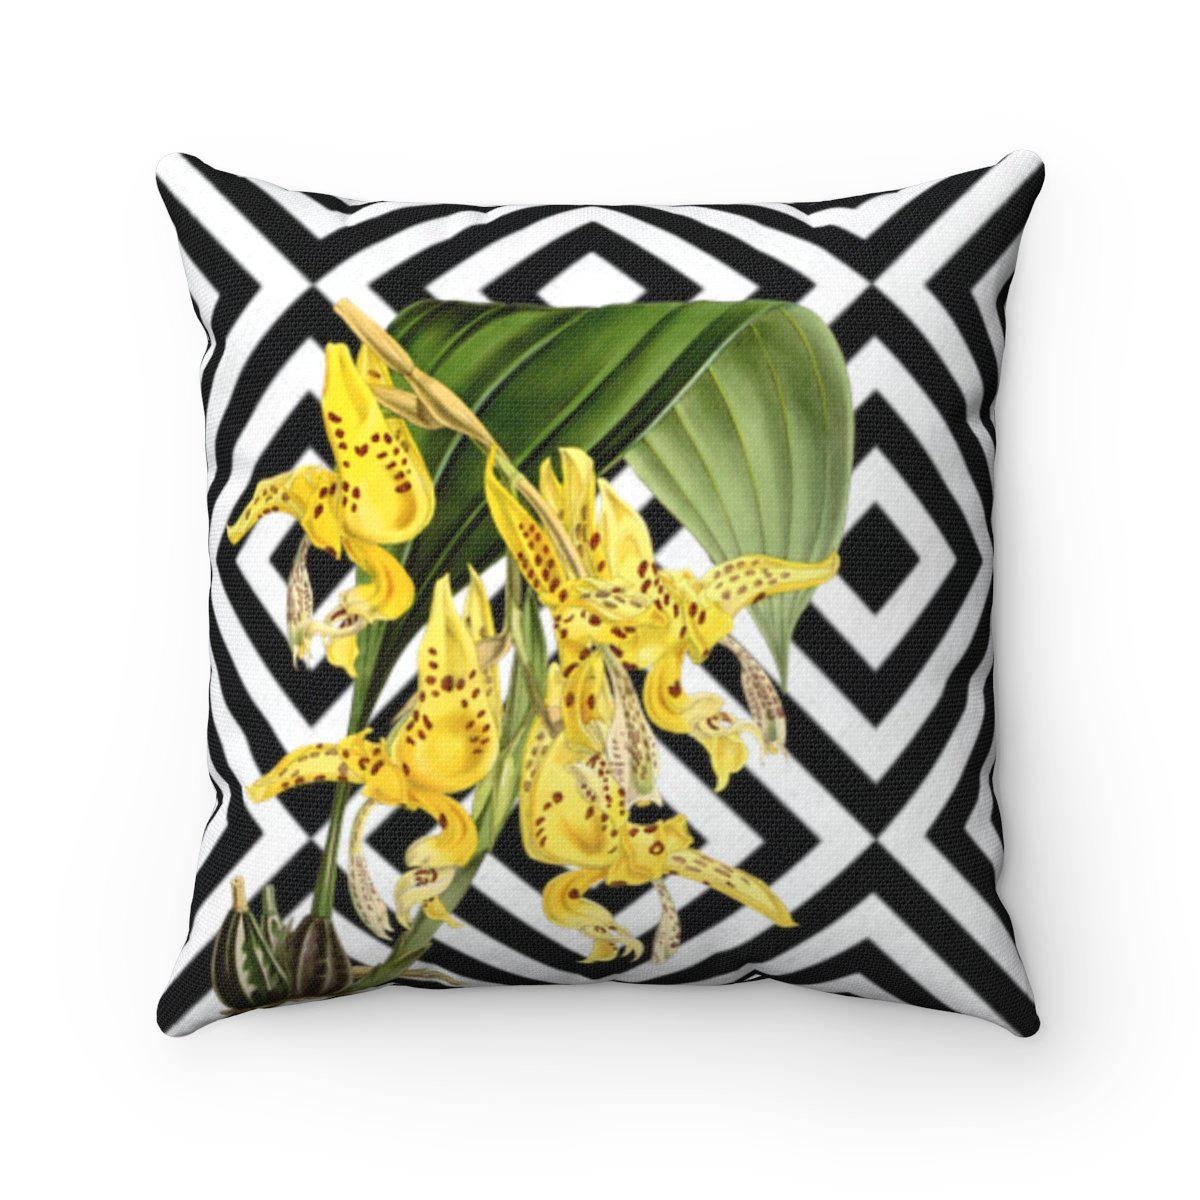 Luxury orchids | Floral abstract decorative cushion cover-Home Decor - Decorative Accents - Pillows & Throws - Decorative Pillows-Maison d'Elite-14x14-Très Elite